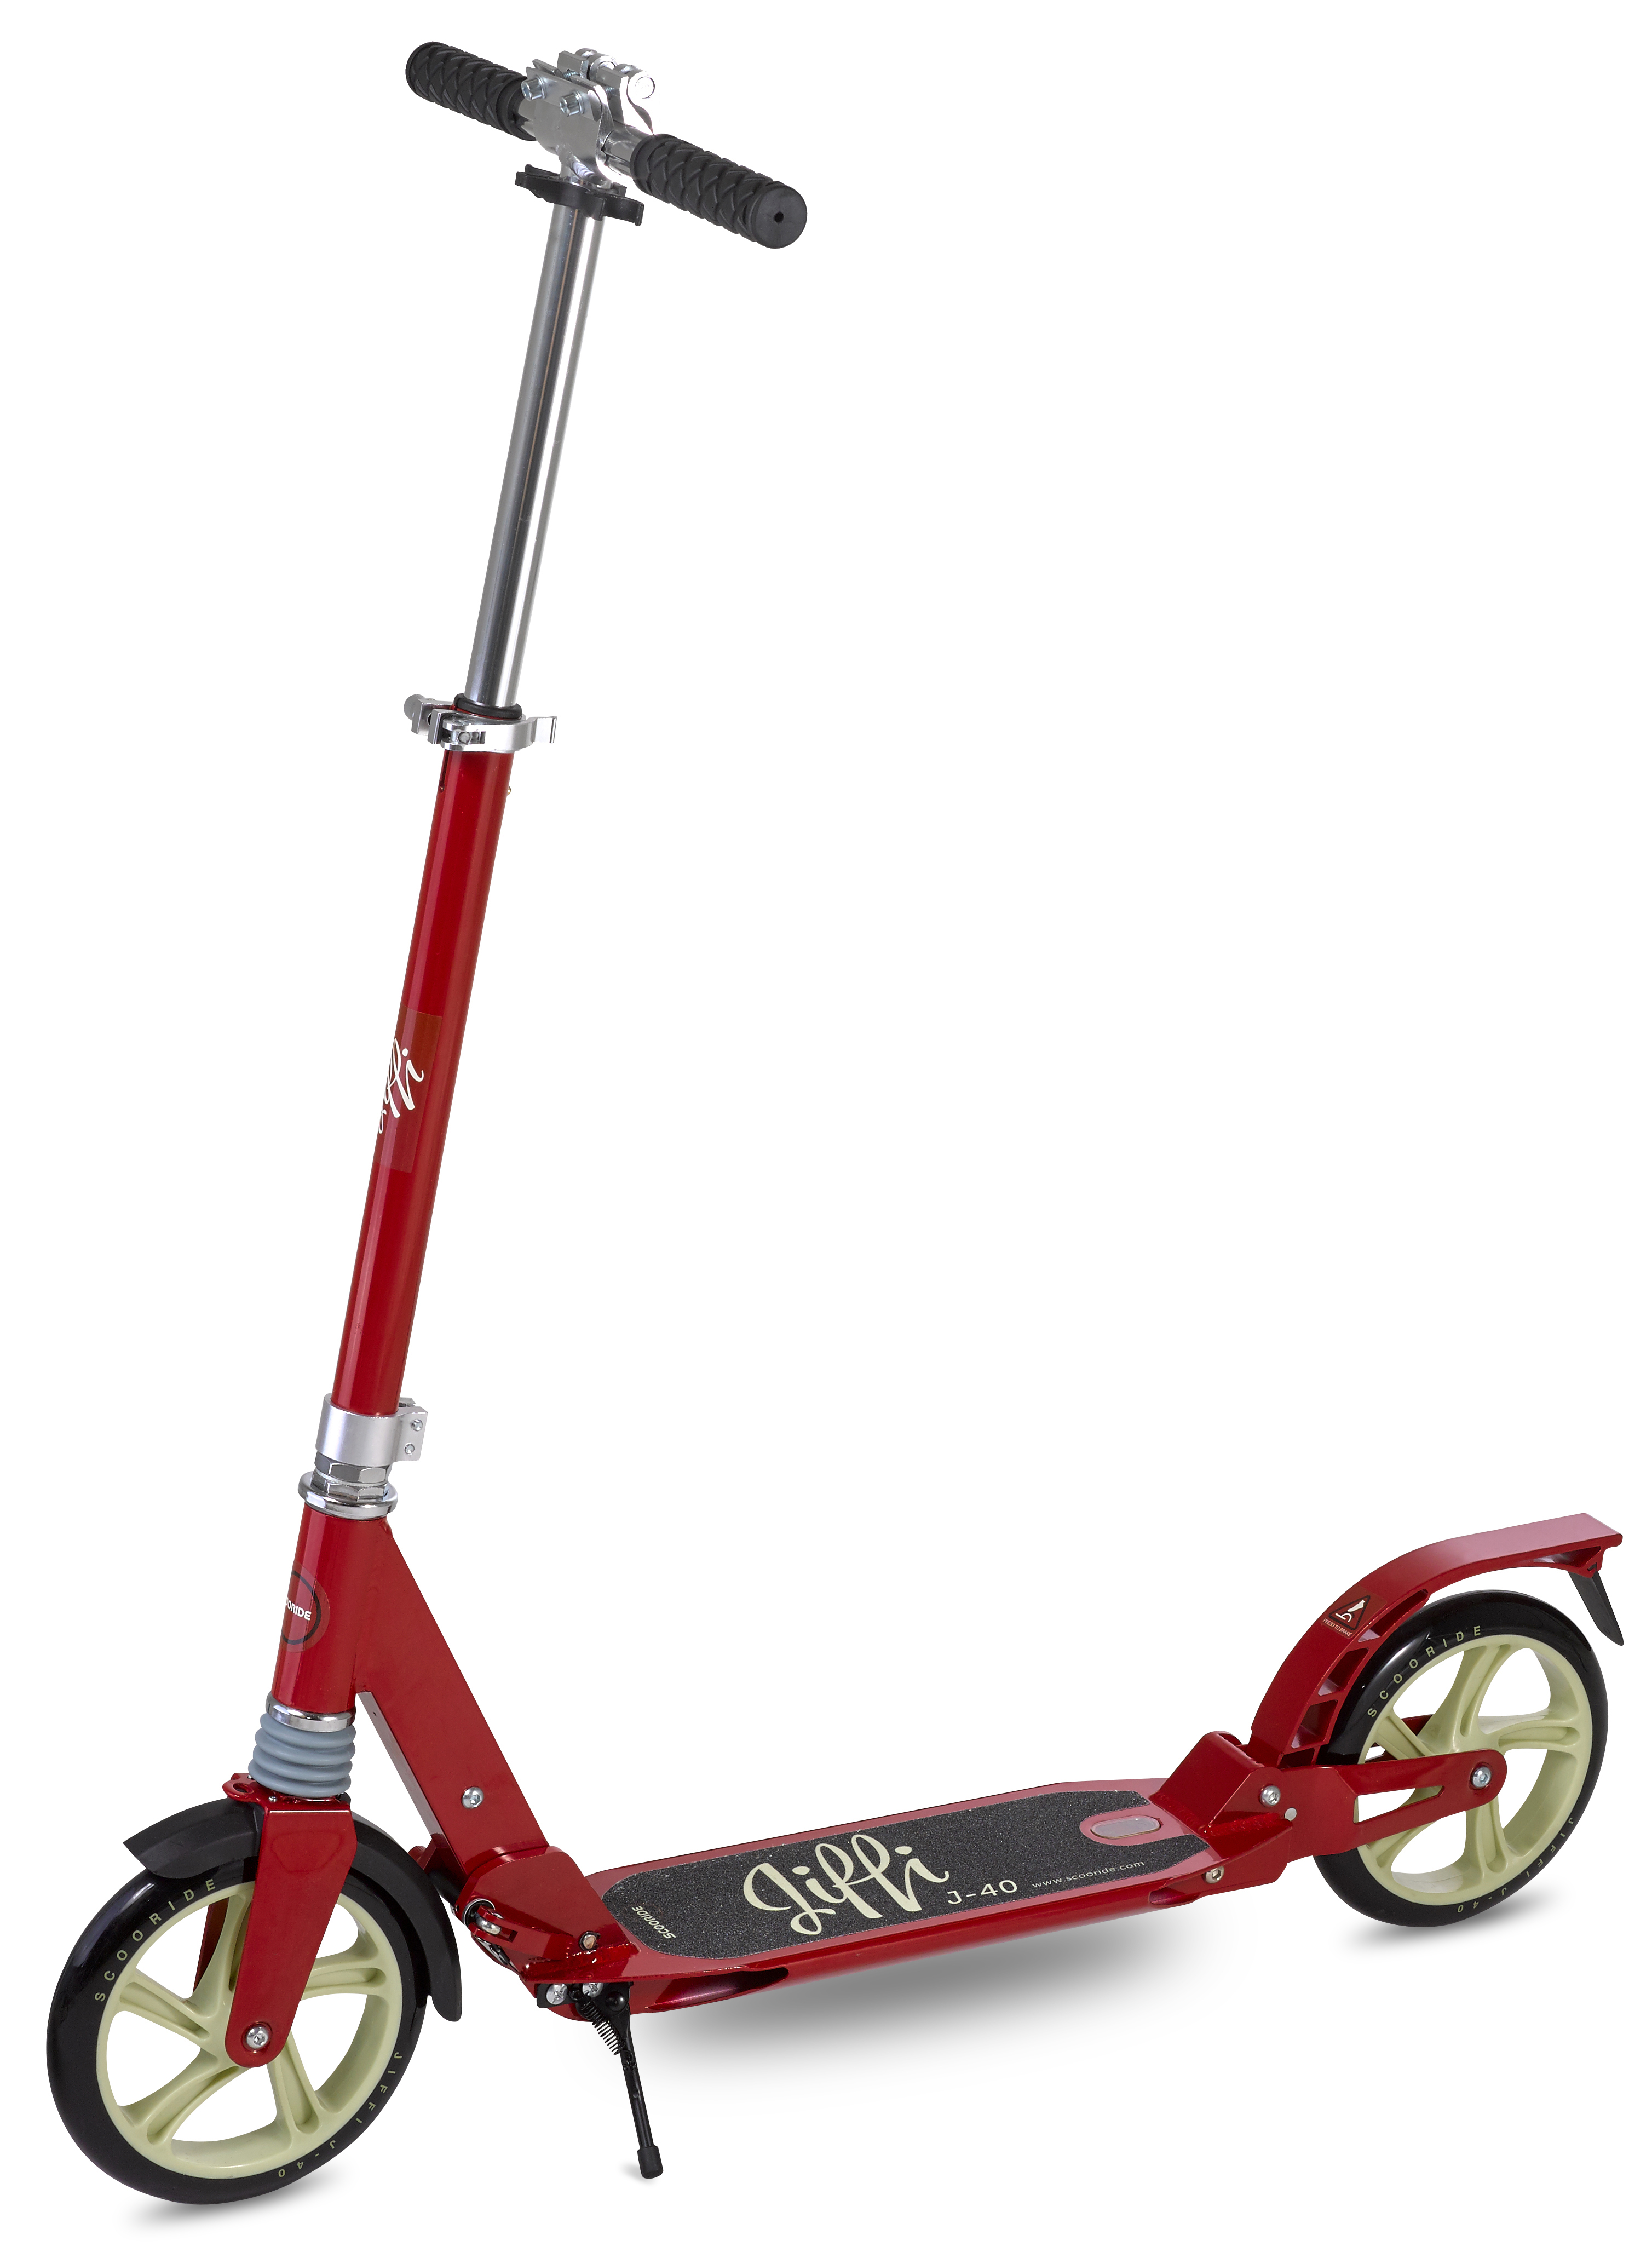 Scooride SRJ01-RD Large Scooter, Red